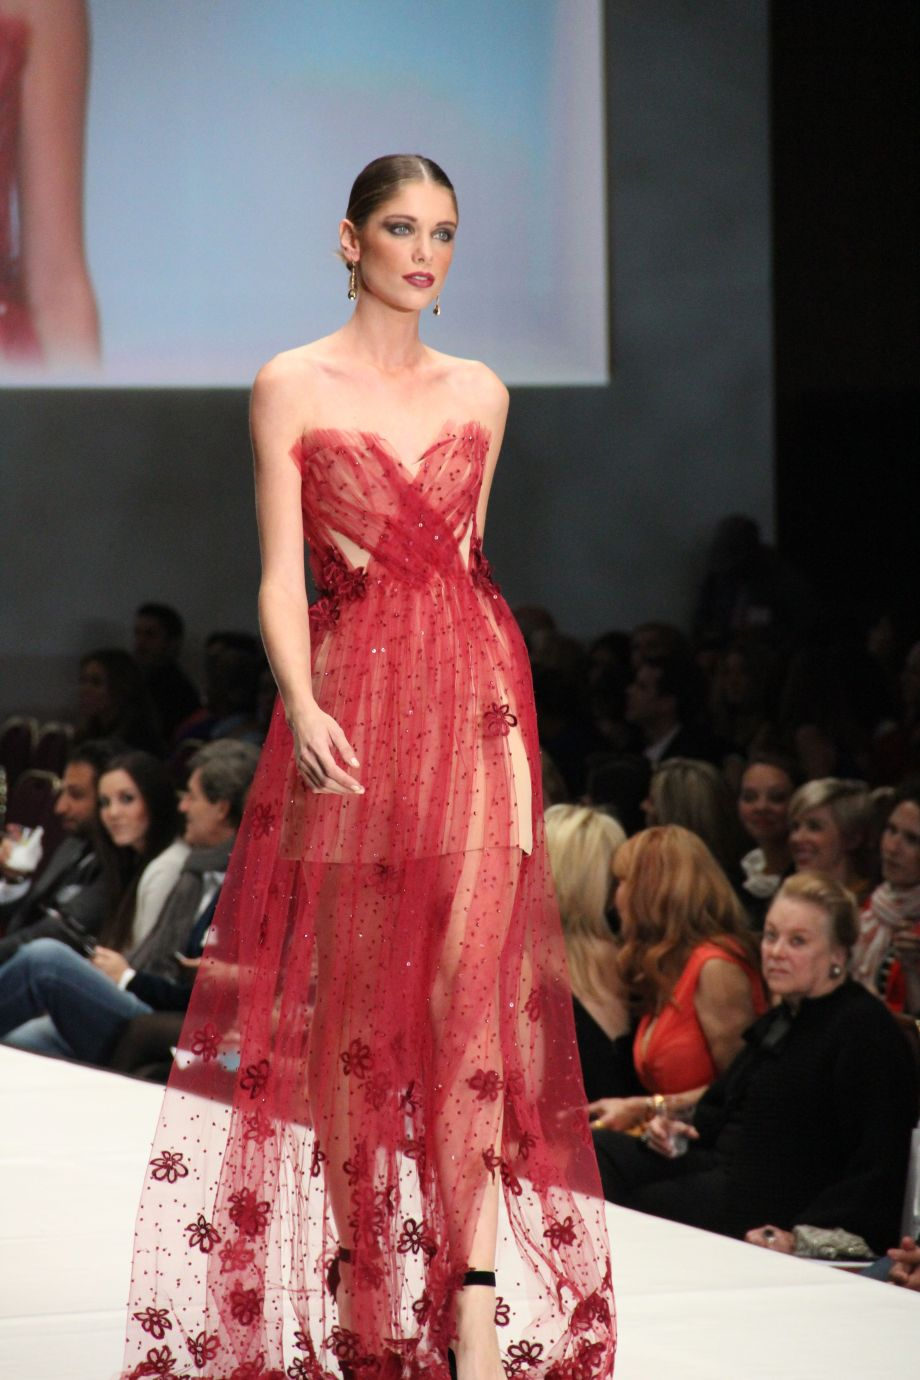 Fashion Houston - Raspberry Sheer - Chloe Dao